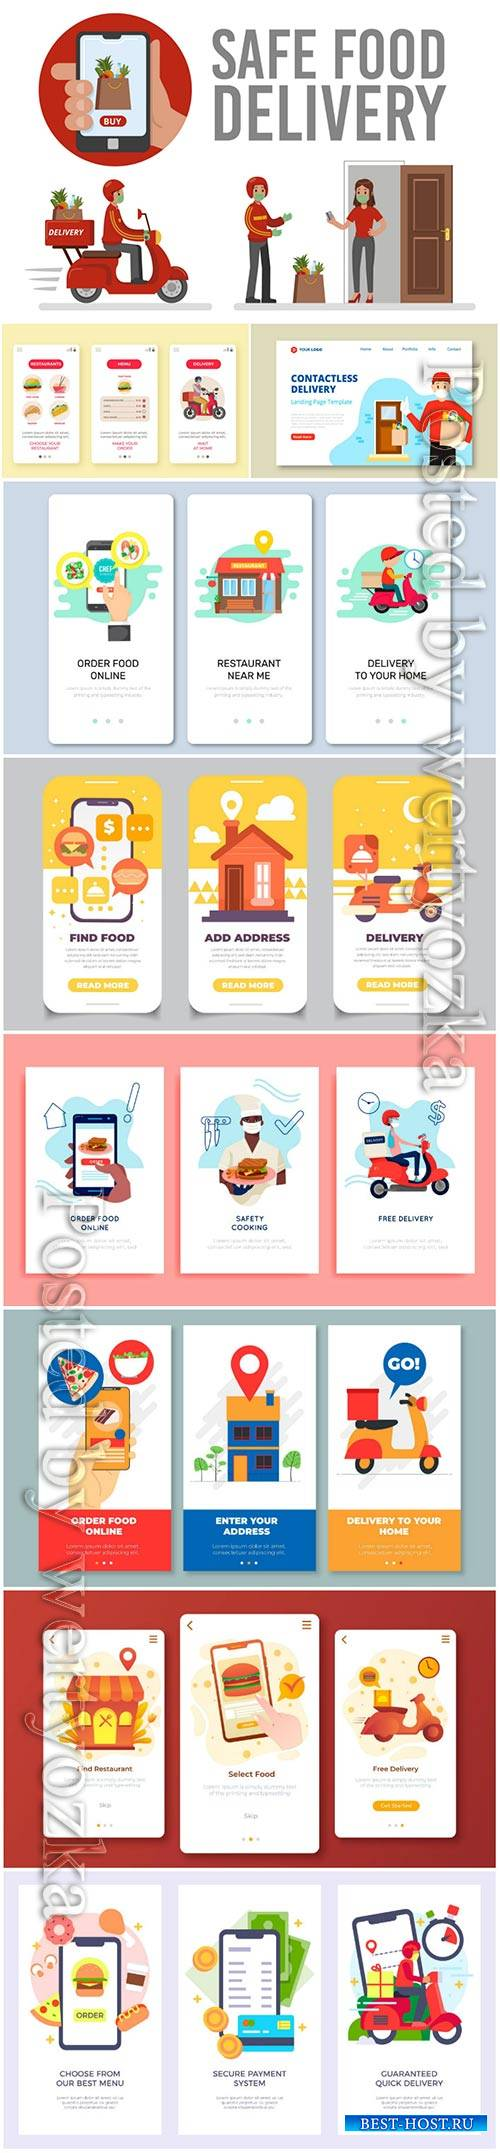 Food delivery app onboarding screens vector